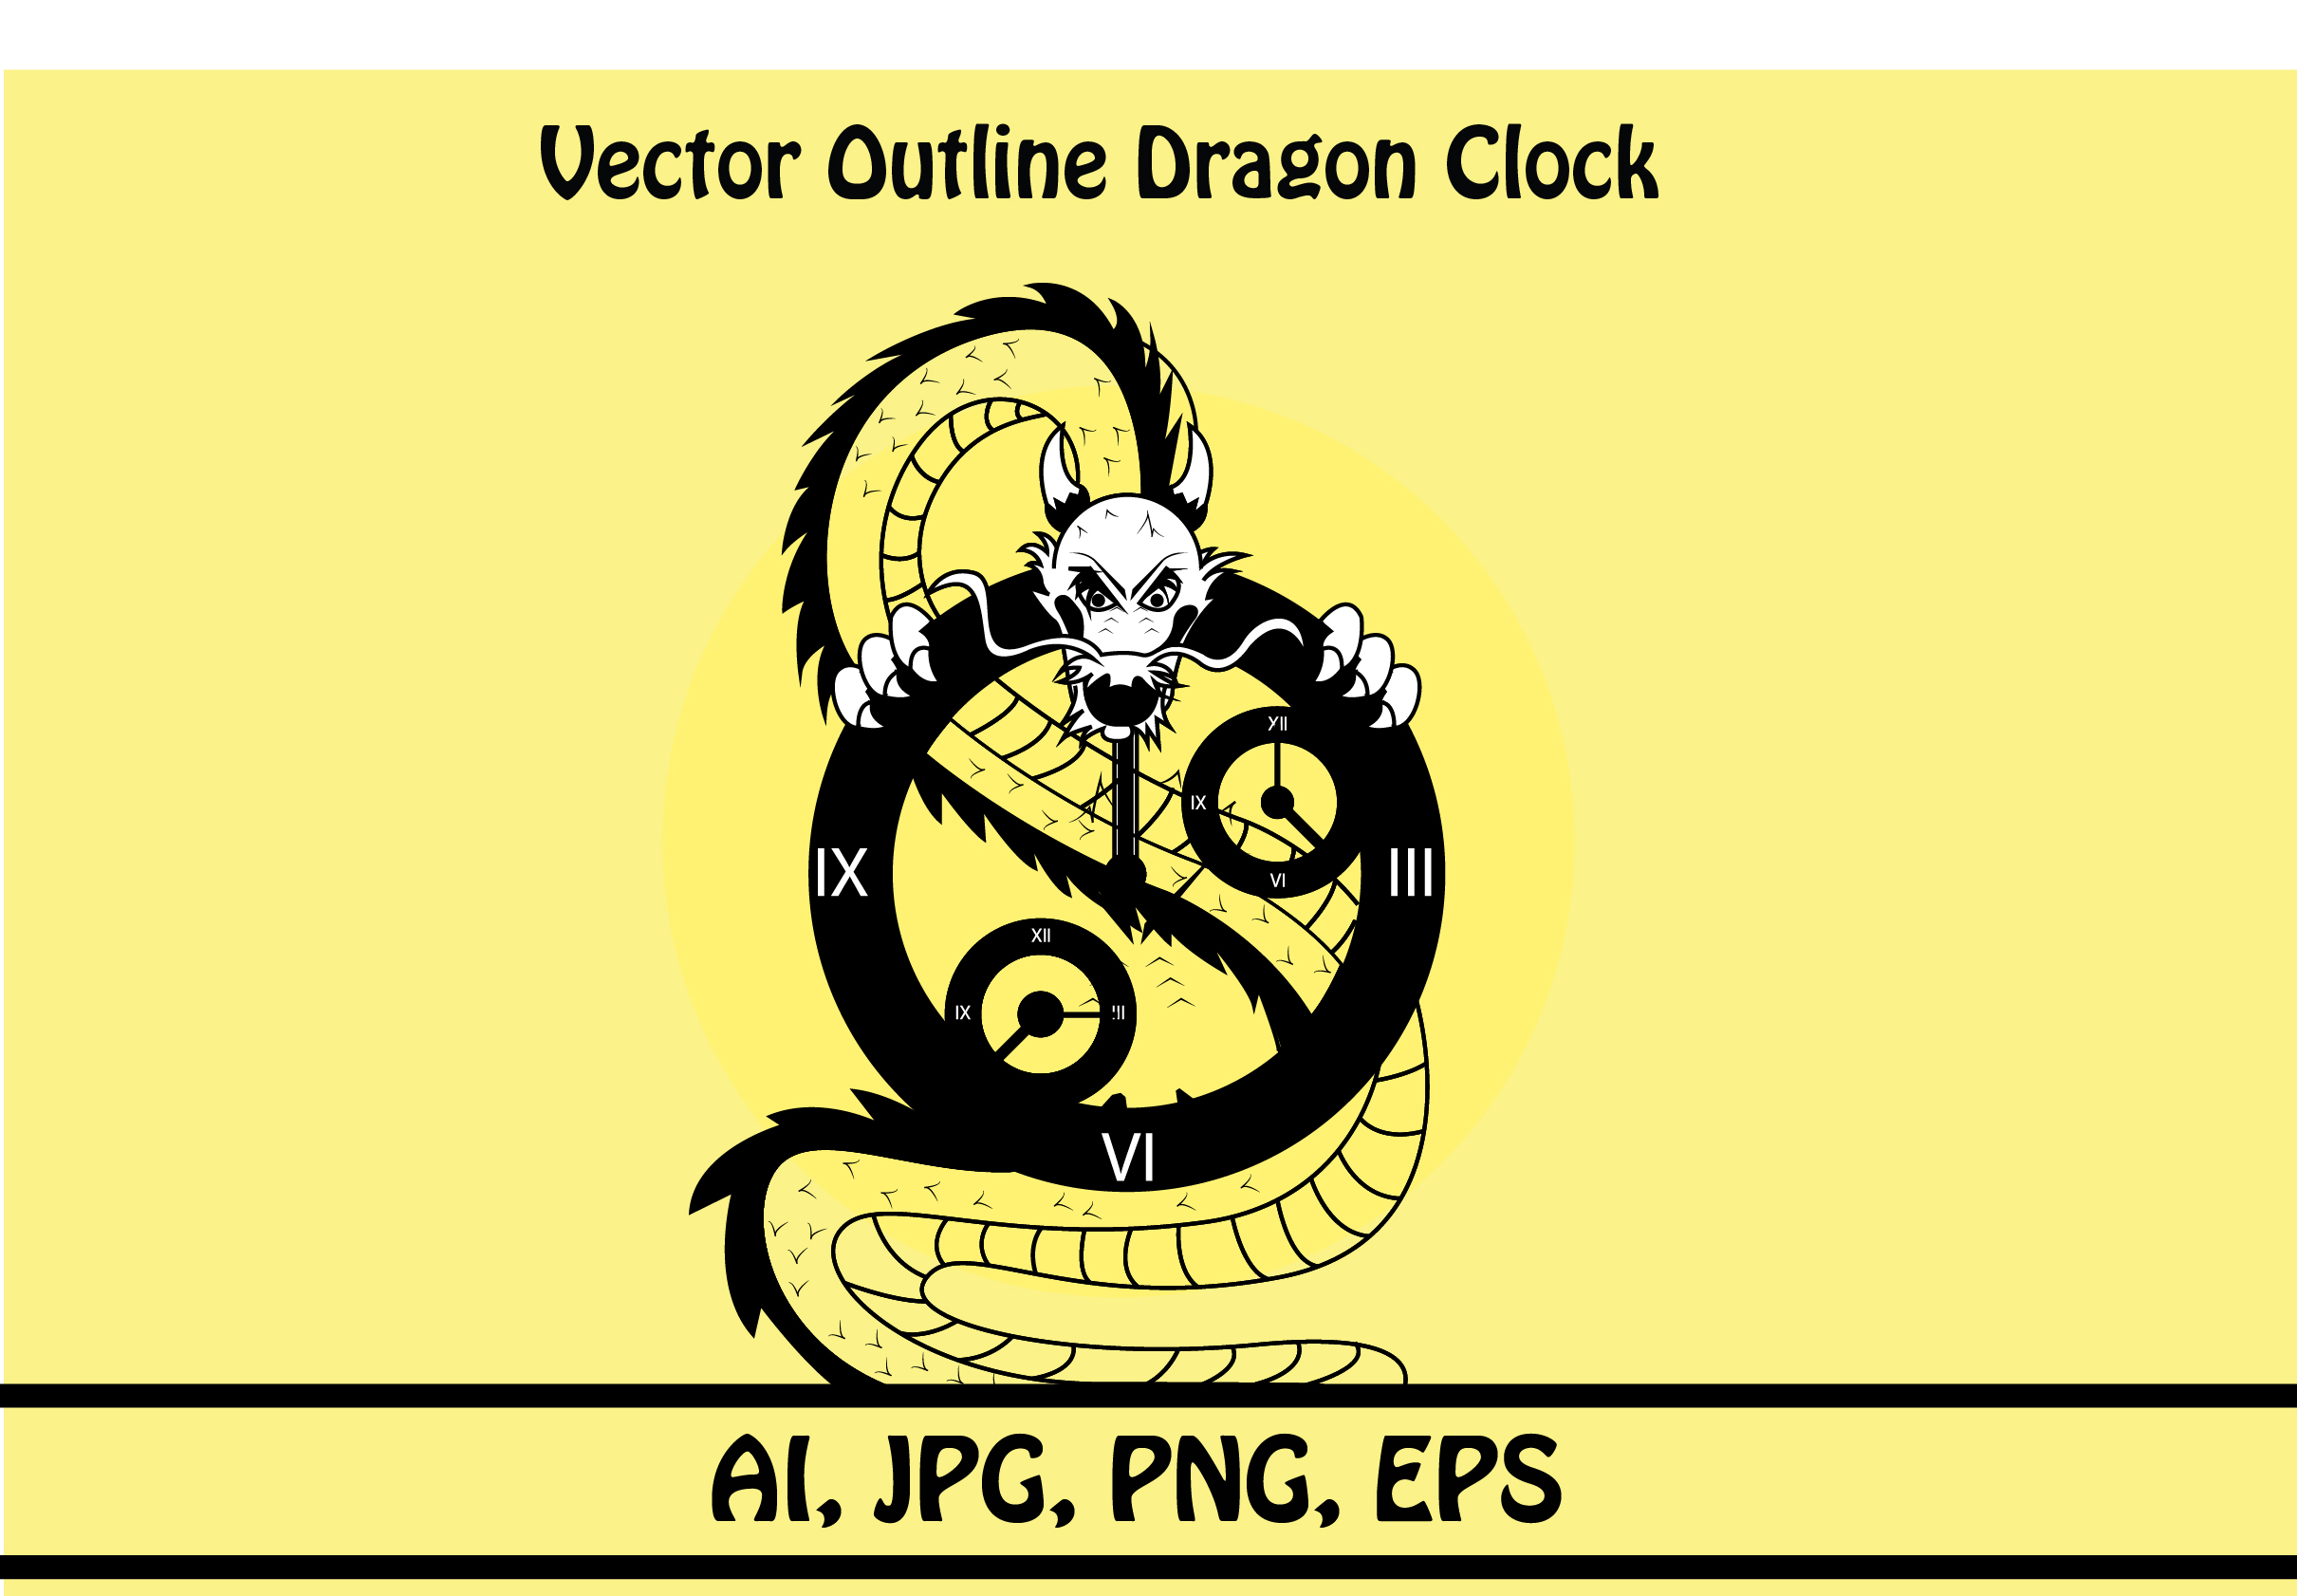 Download Free Vector Outline Dragon Clock Graphic By Rafcreative3 Creative for Cricut Explore, Silhouette and other cutting machines.